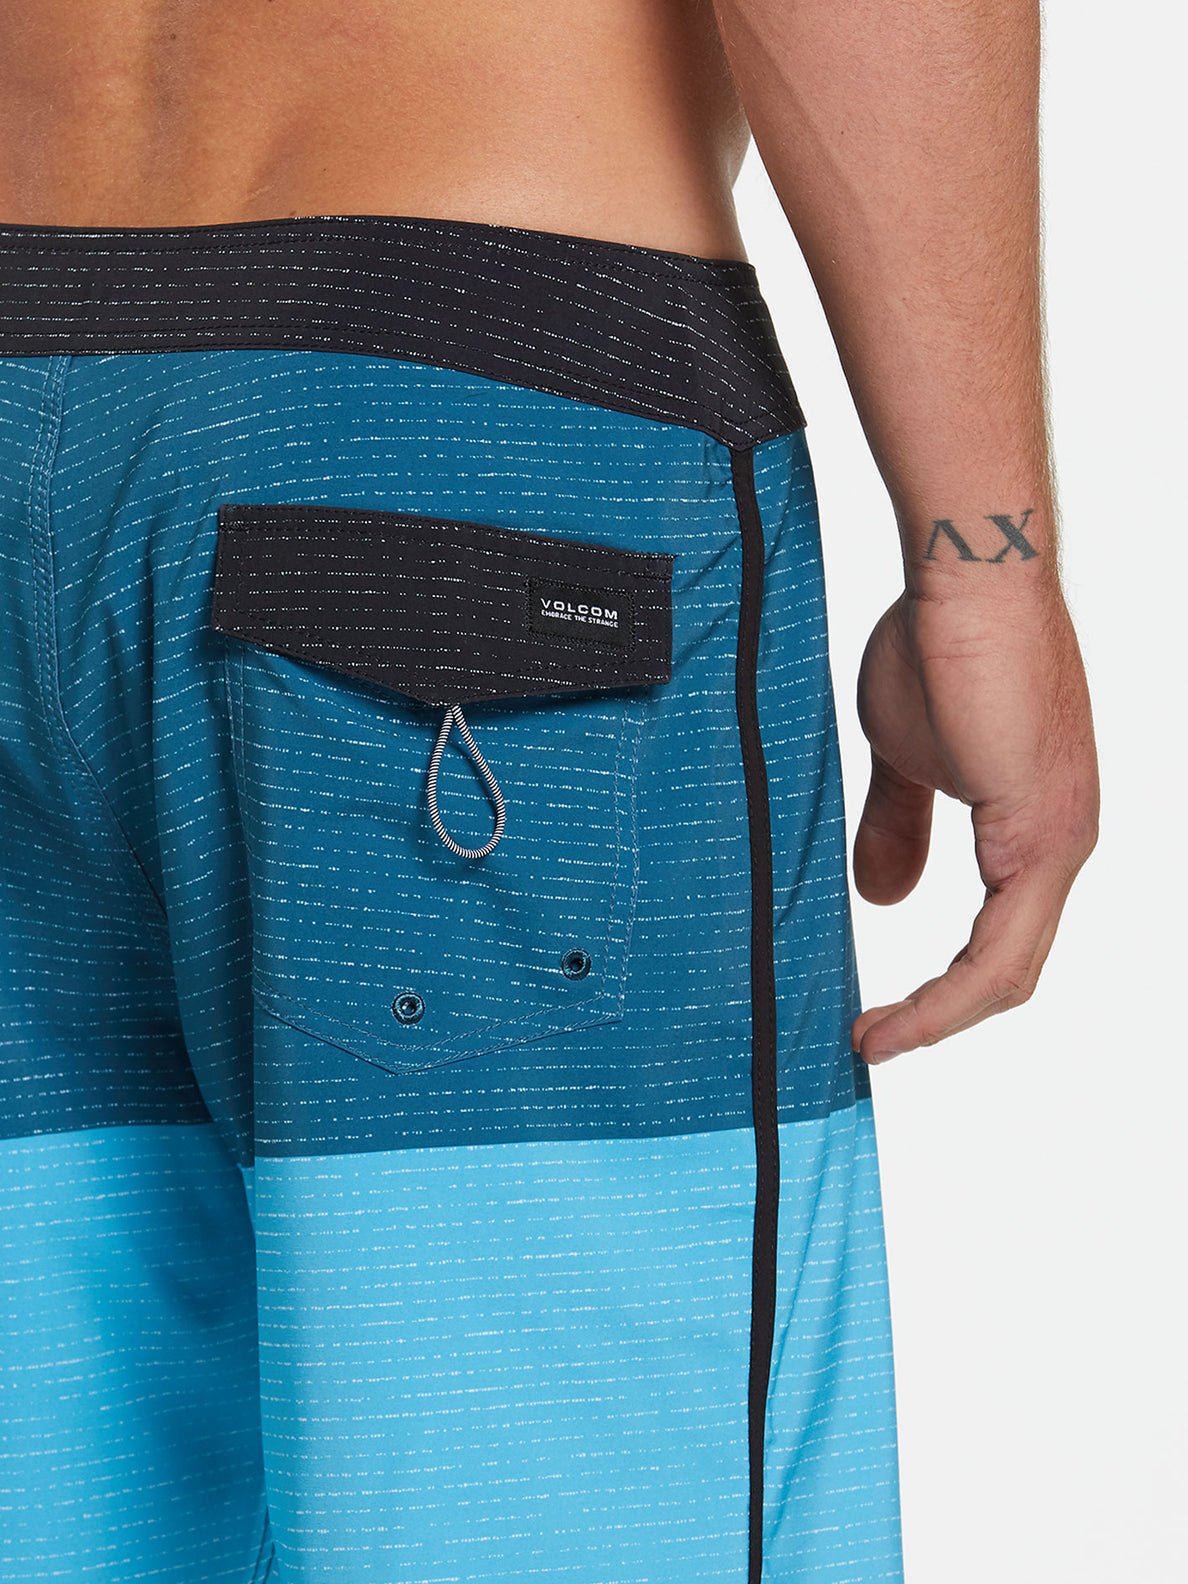 Lido Heather Scallop Mod-Tech Trunks - Rincon Blue (A0822015_RNC) [4]